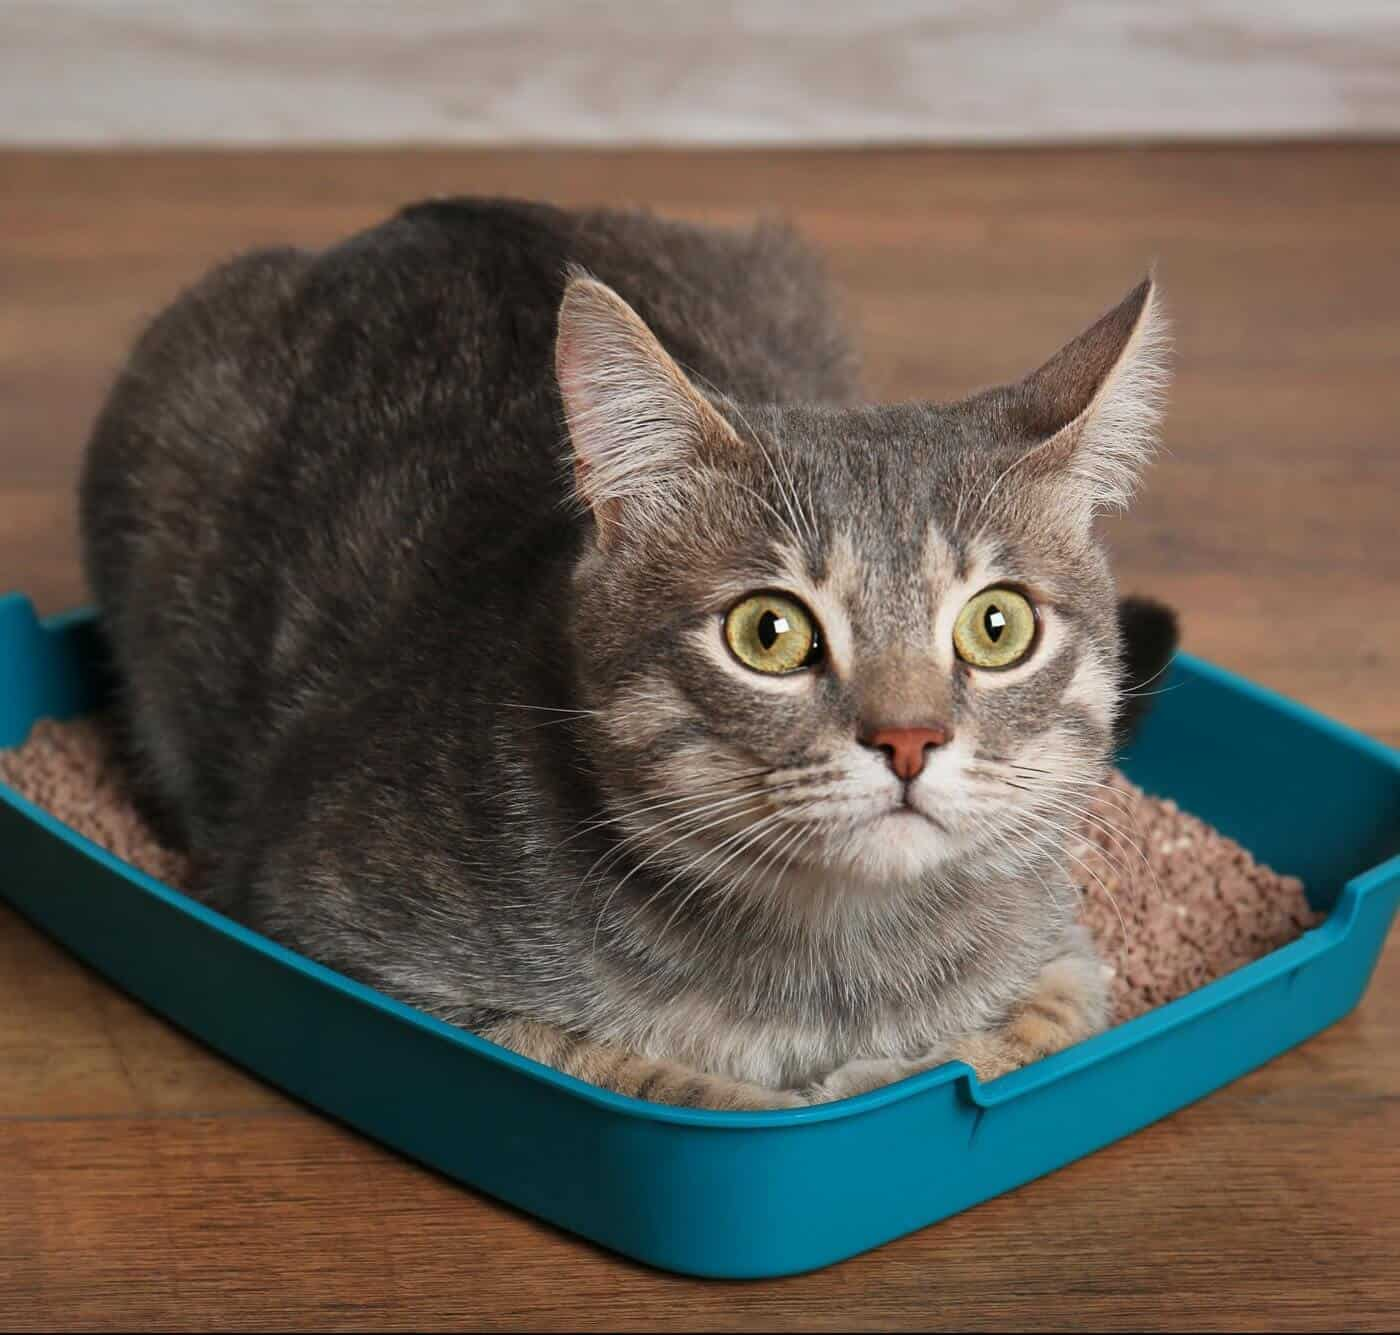 Your Cat Sleeping In Litter Box? Here Are 5 Reasons Why 1